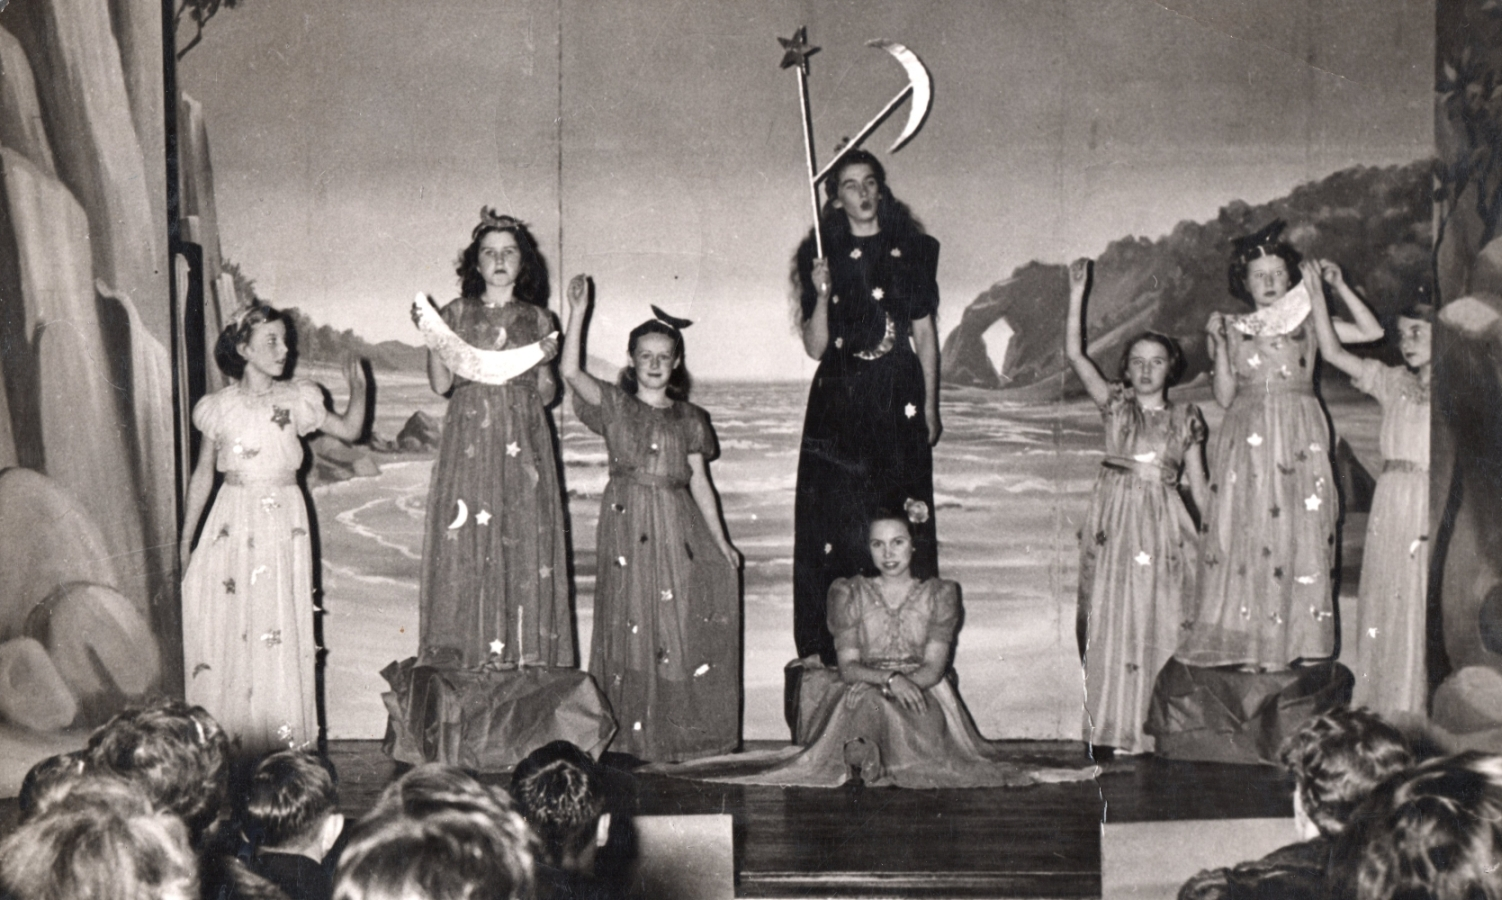 A scene on  stage at Villa Maria. Seven girls in long dresses are standing at the back and Henia is sitting serenely middle stage